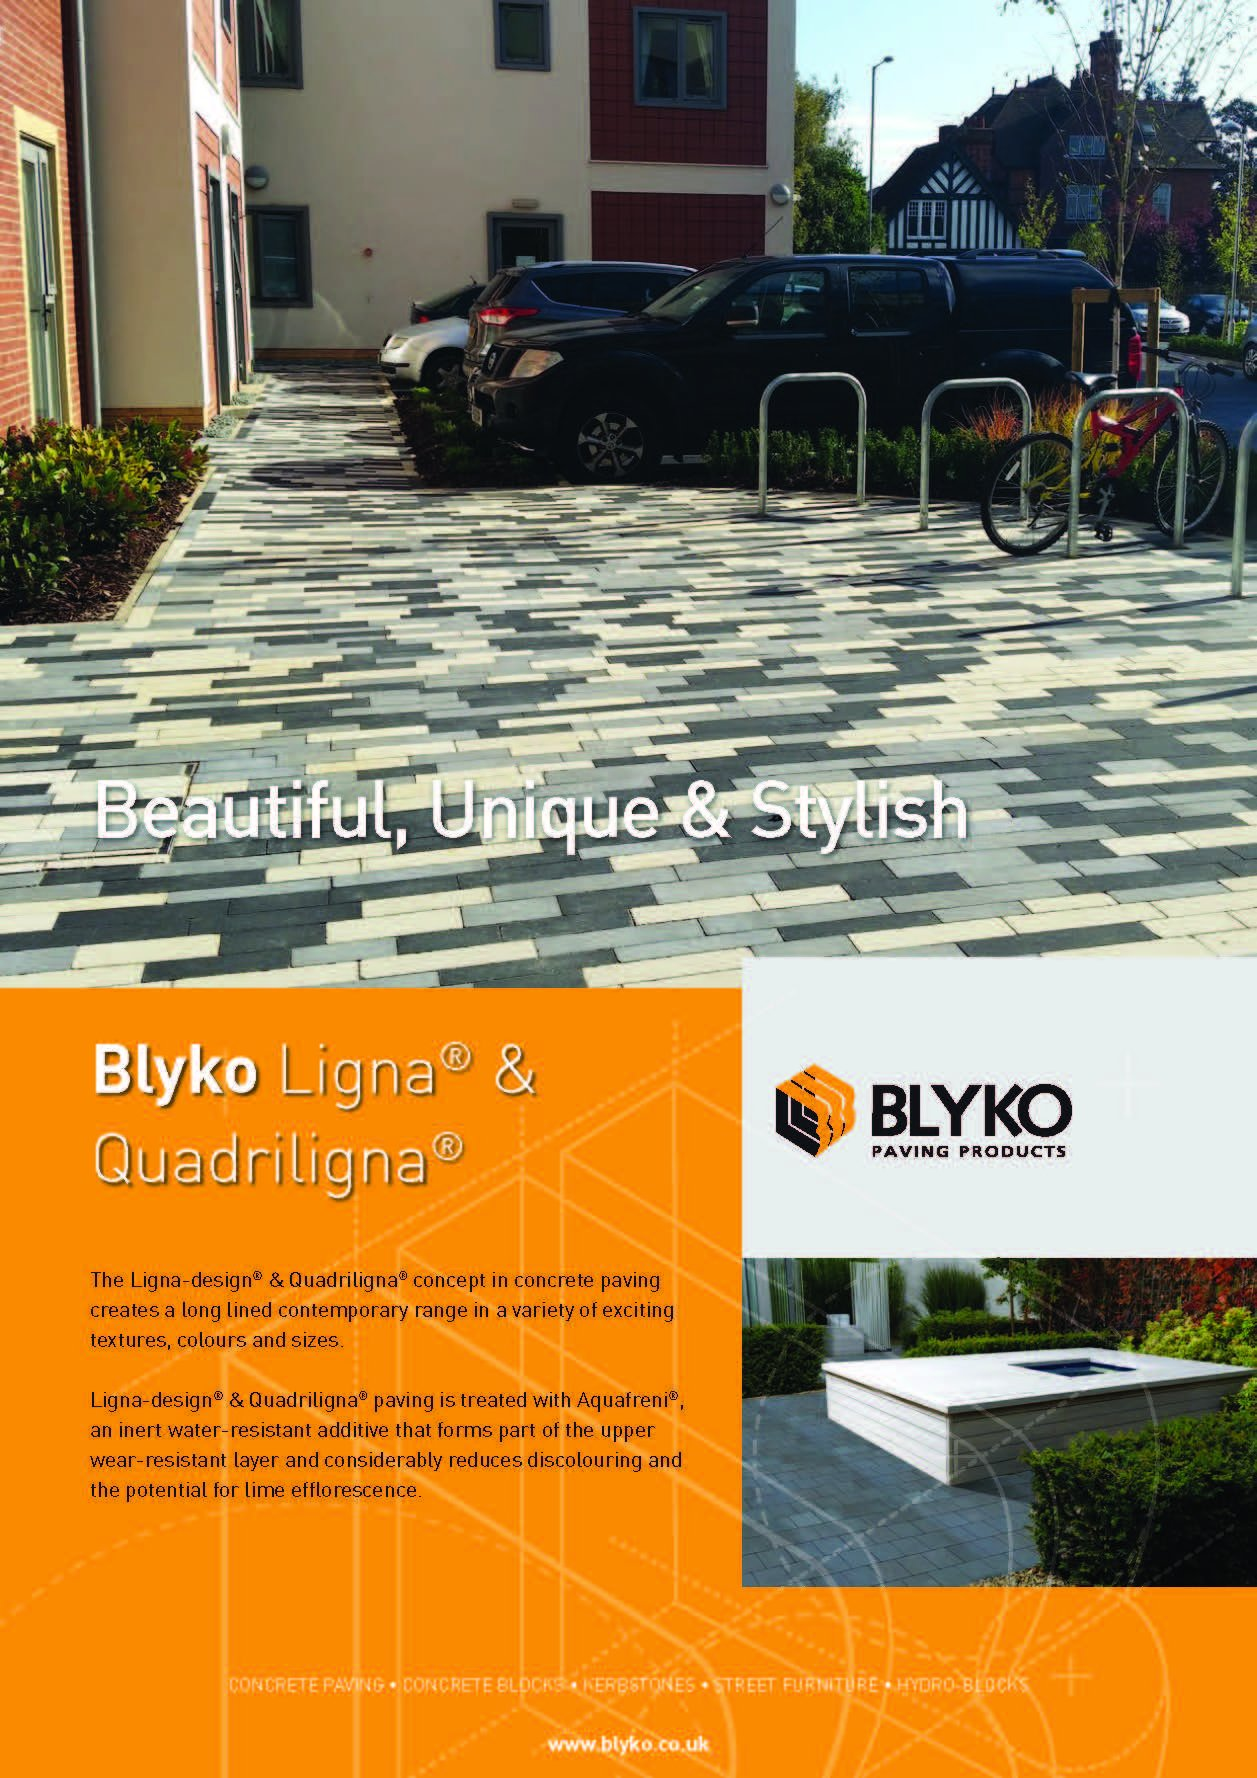 Blyko Paving